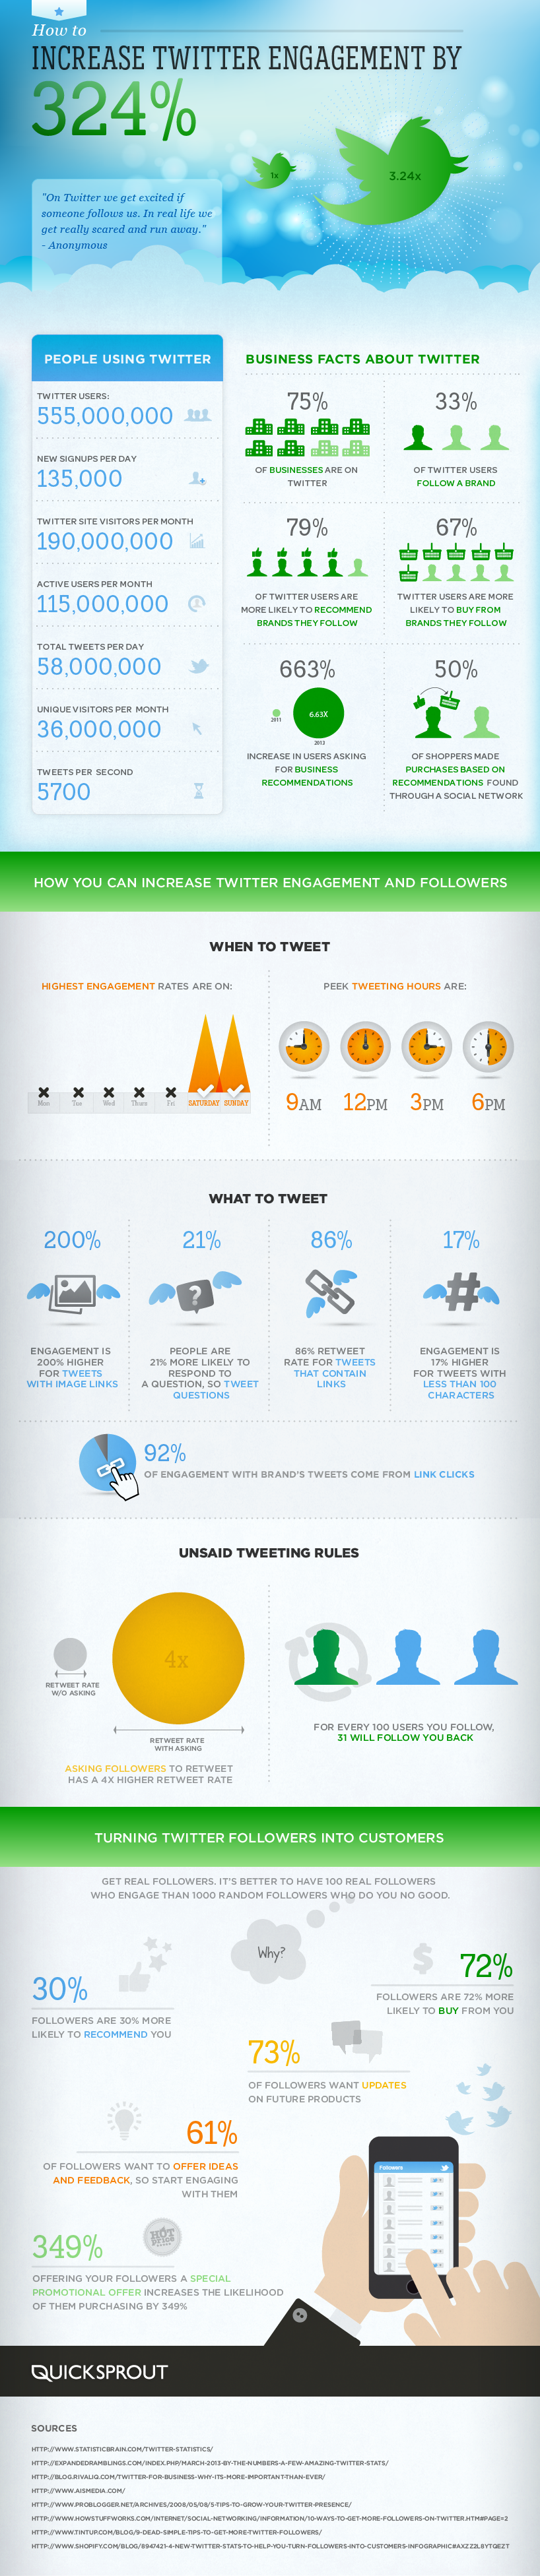 How To Increase Your Twitter Engagement By 324%